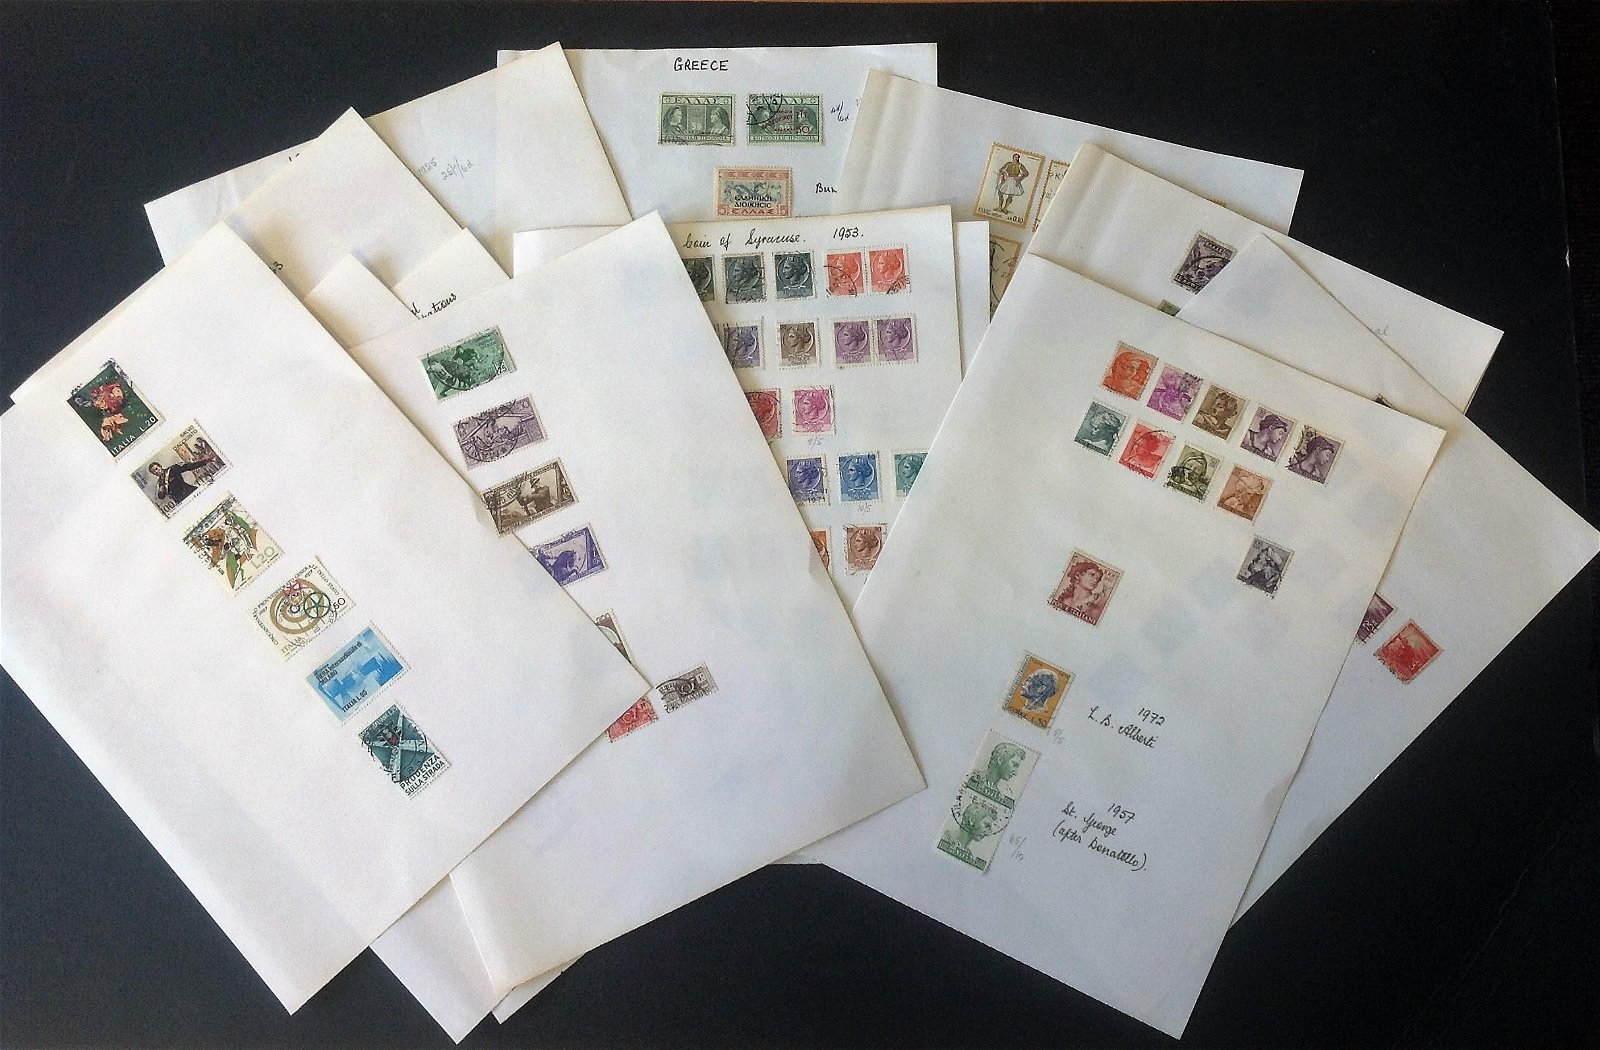 European stamp collection on 15 loose album pages.